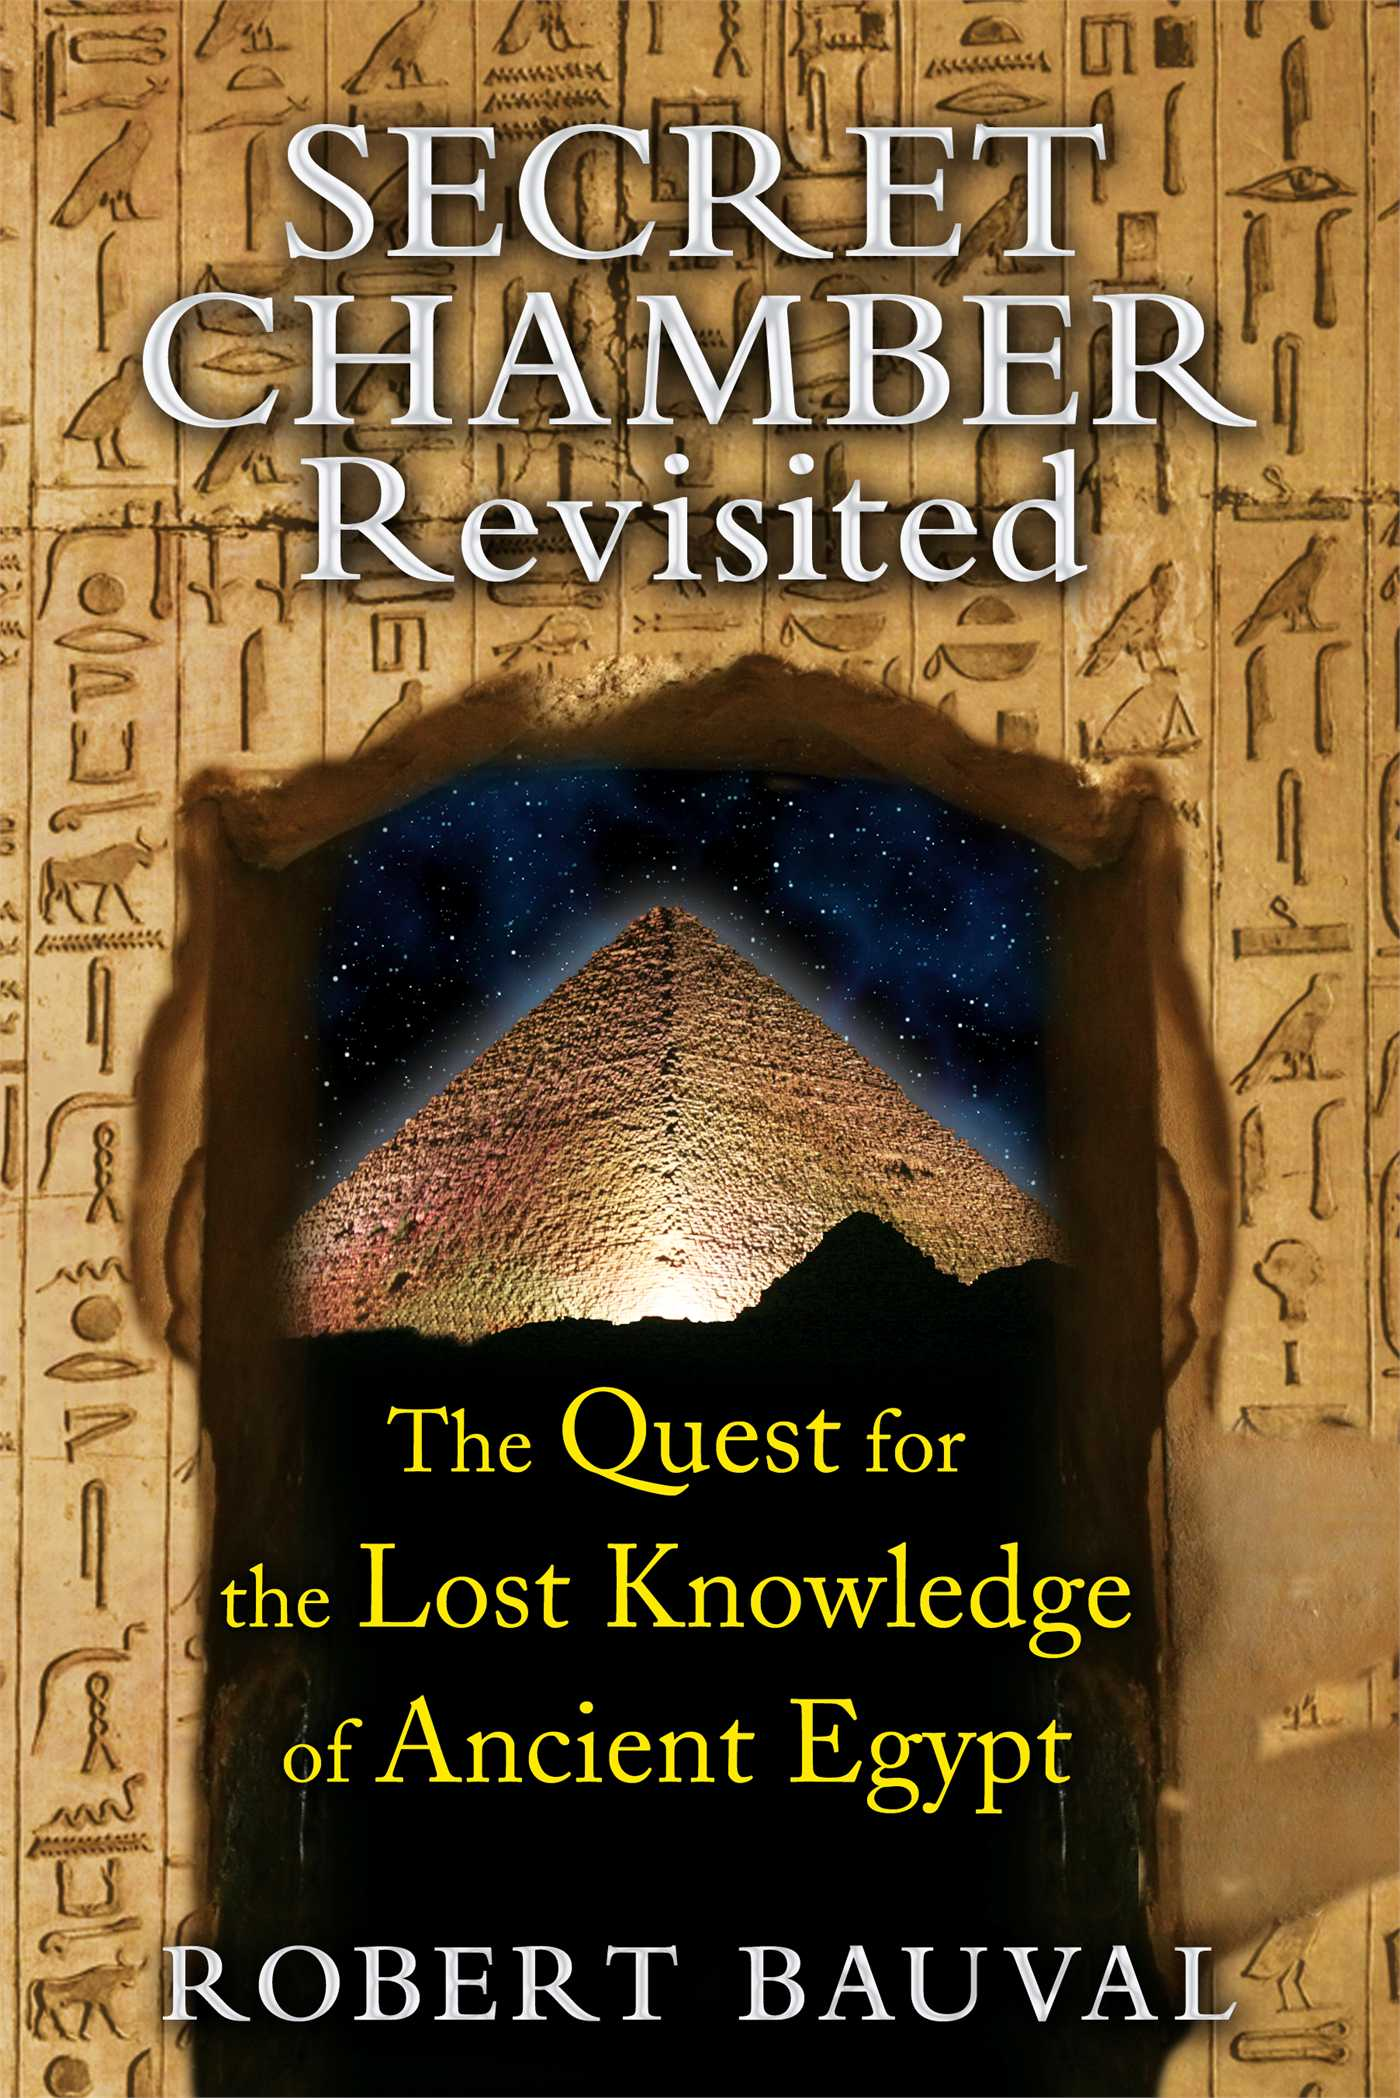 Secret-chamber-revisited-9781591431923_hr